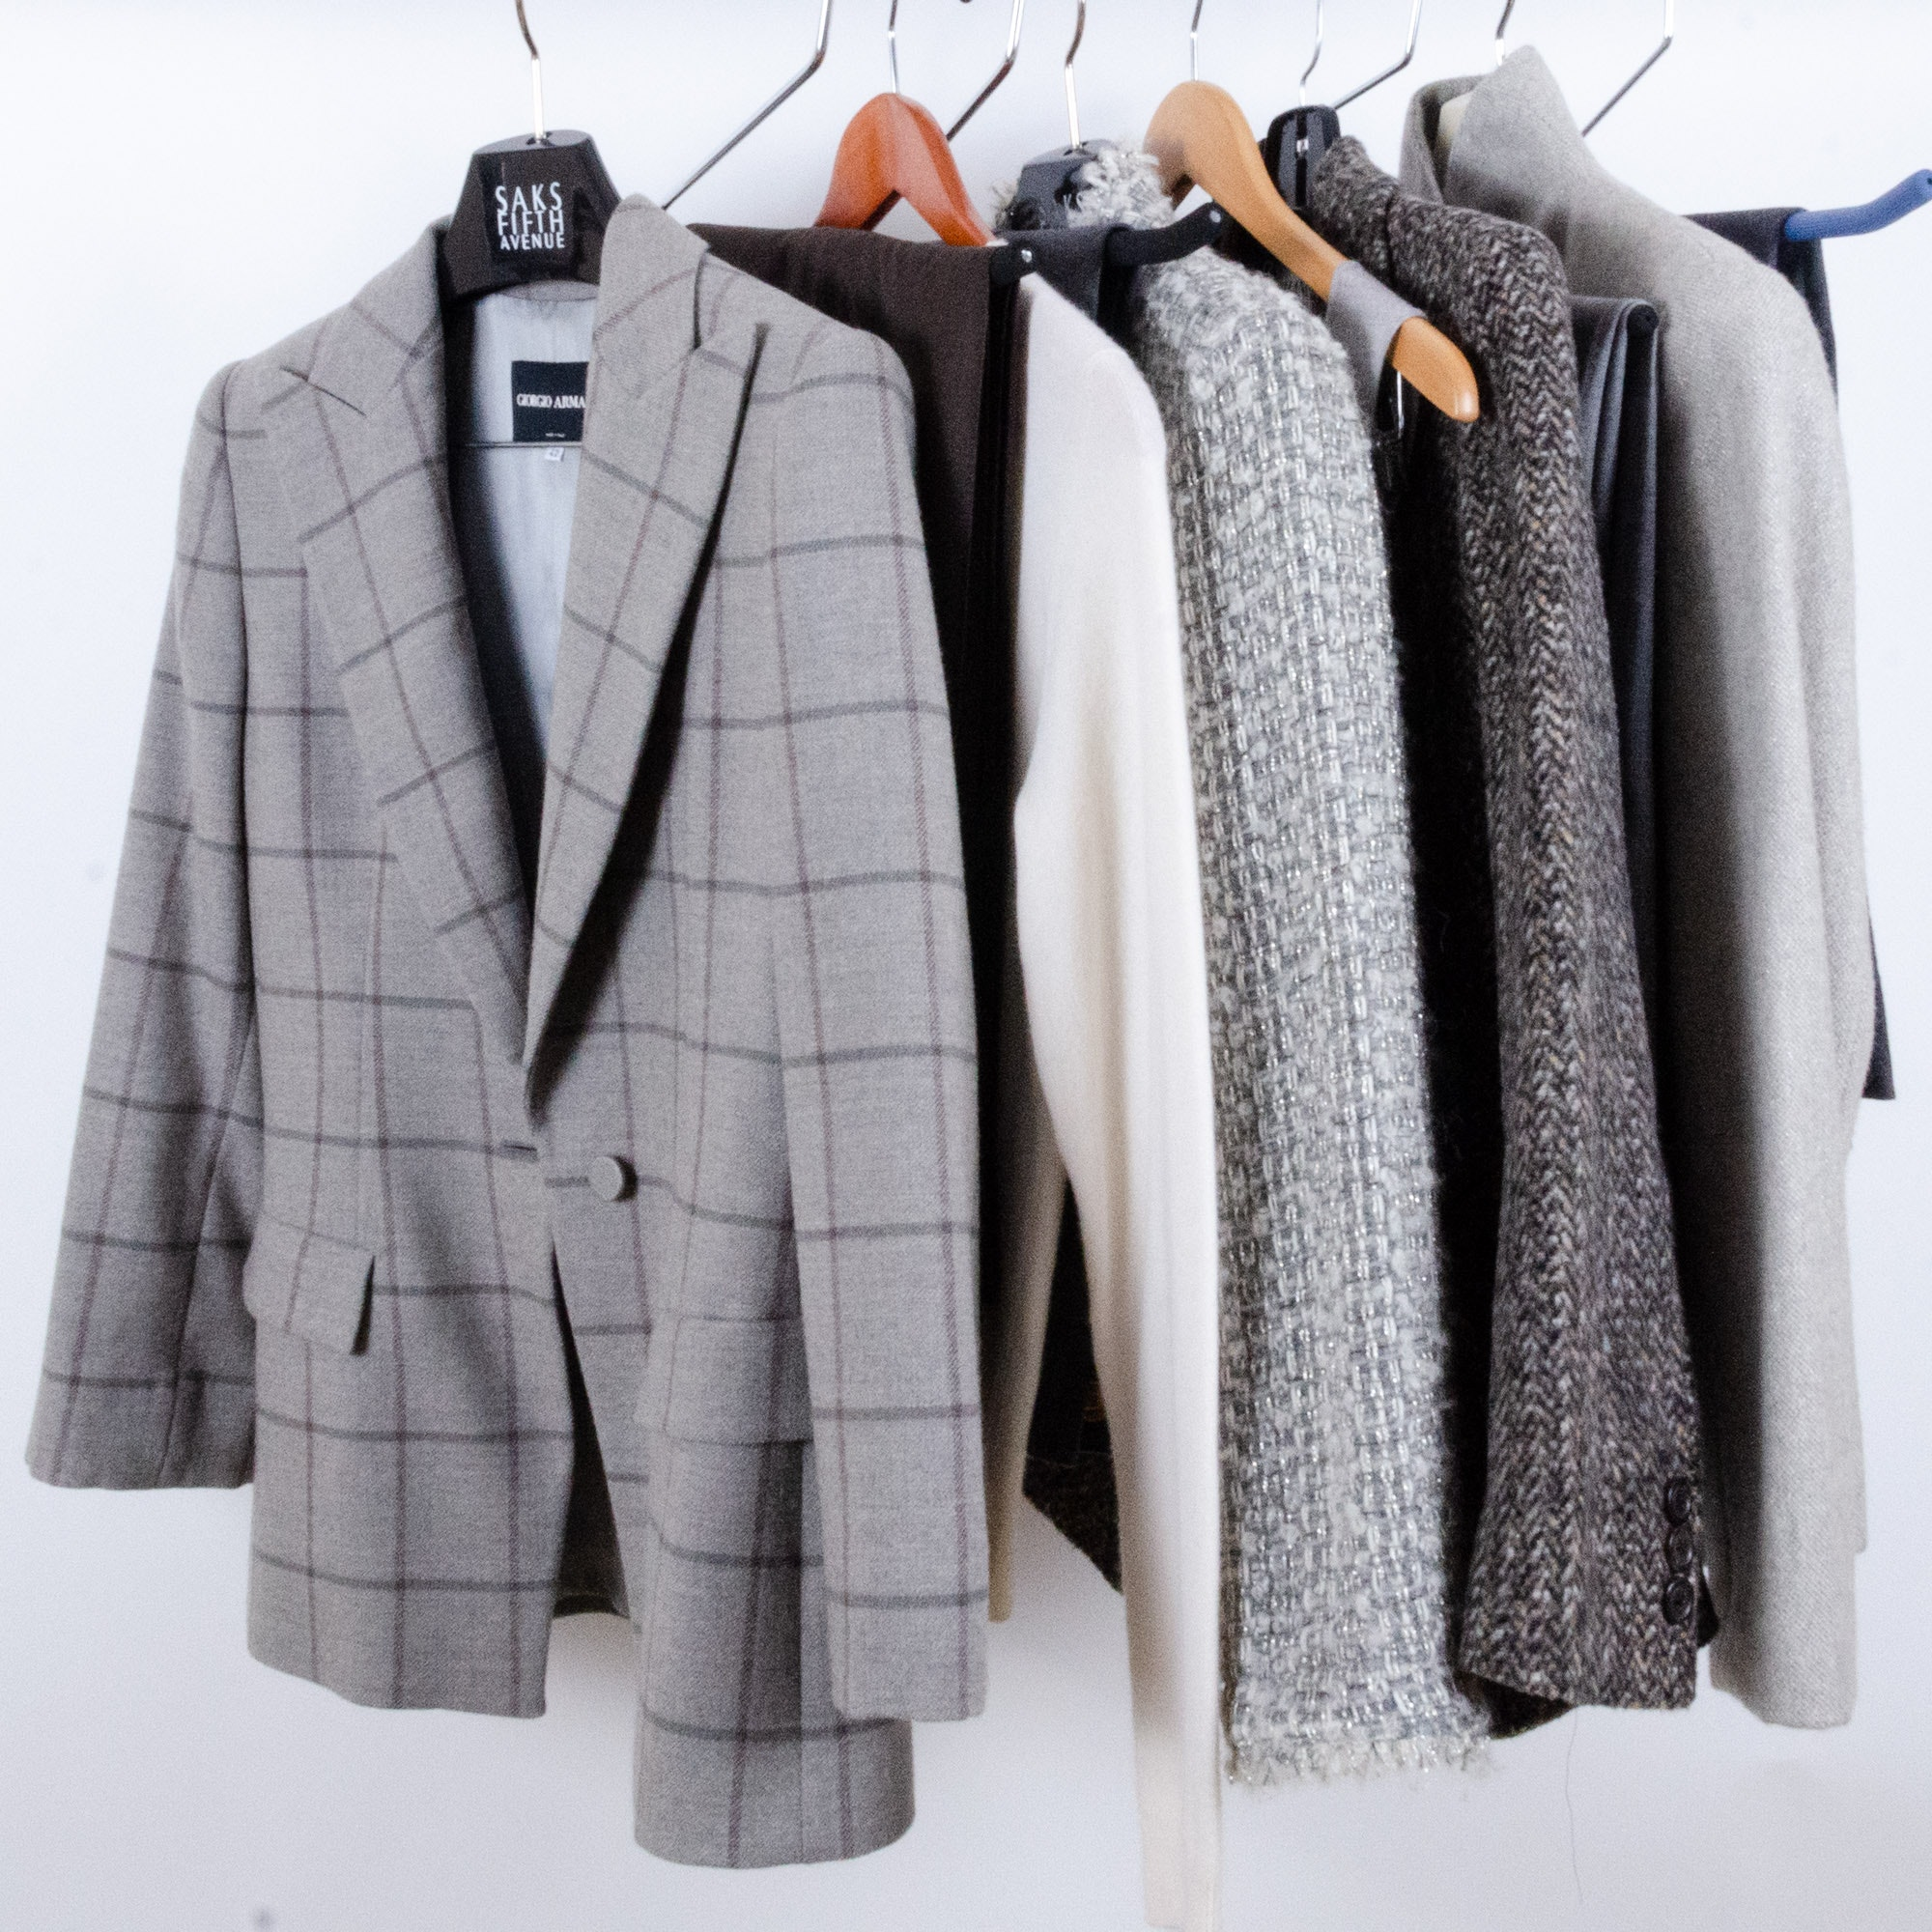 Women's Wool Jackets and Pants with Armani, Ralph Lauren